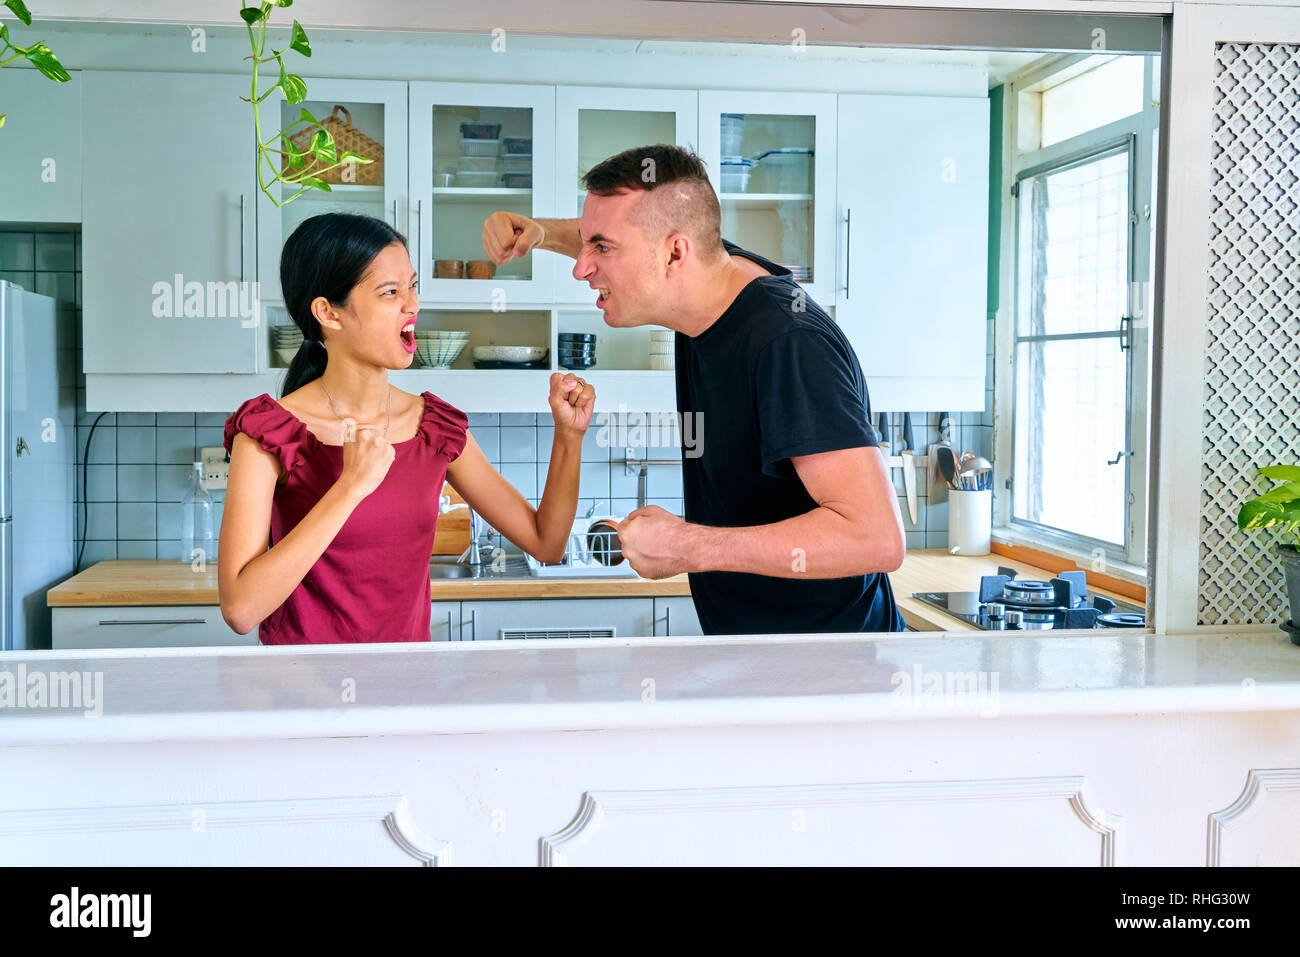 Lovely couple posing - fighting each other - Stock Image